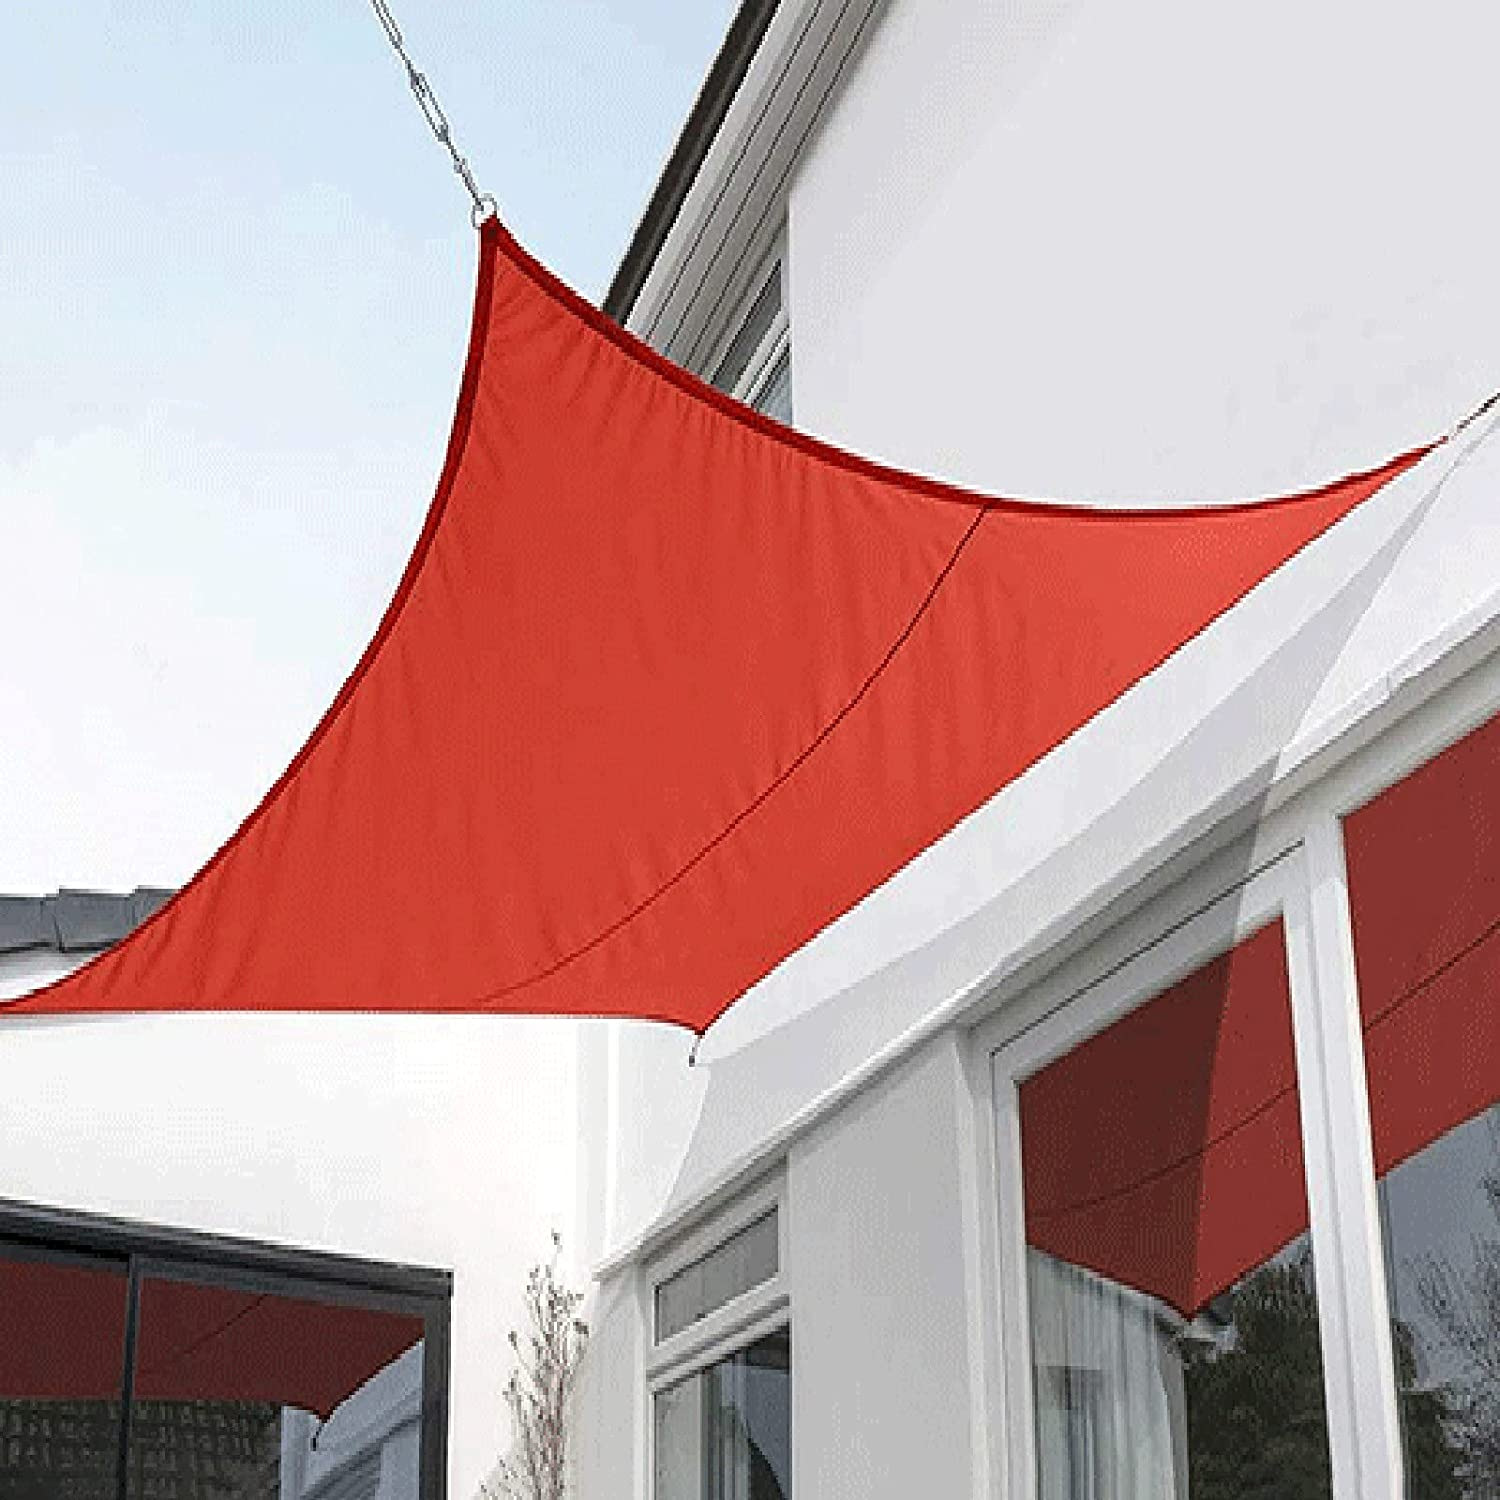 Sun Shade Sail Water Resistant Awning with Sunscreen Canopy Sale Special Price Rop OFFer